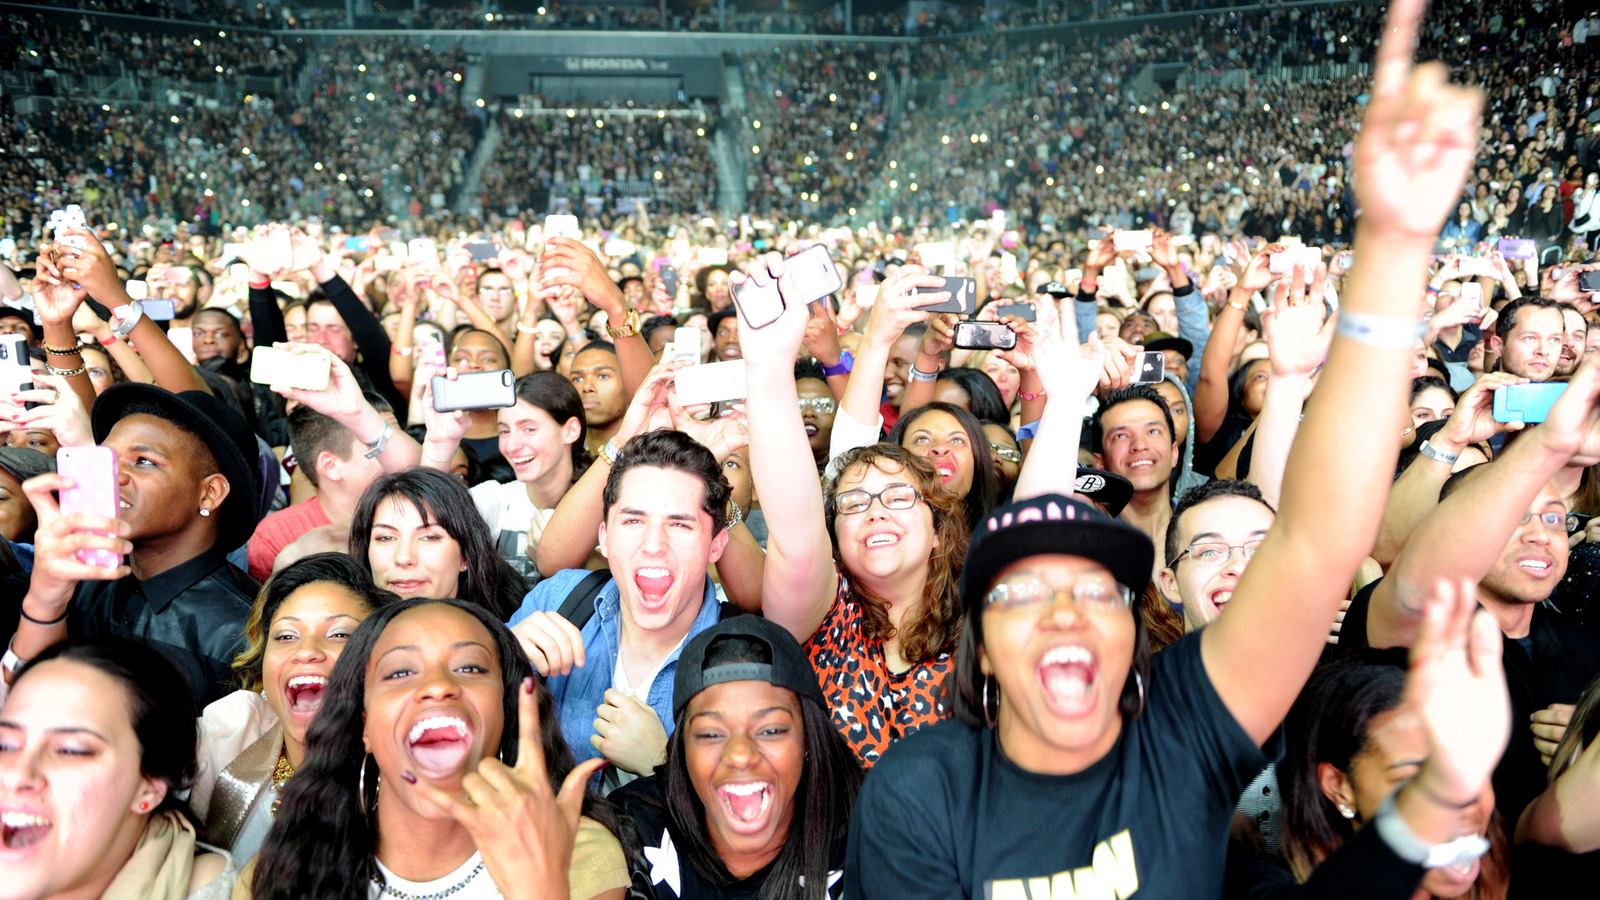 Which celebrities have the most loyal fan bases?